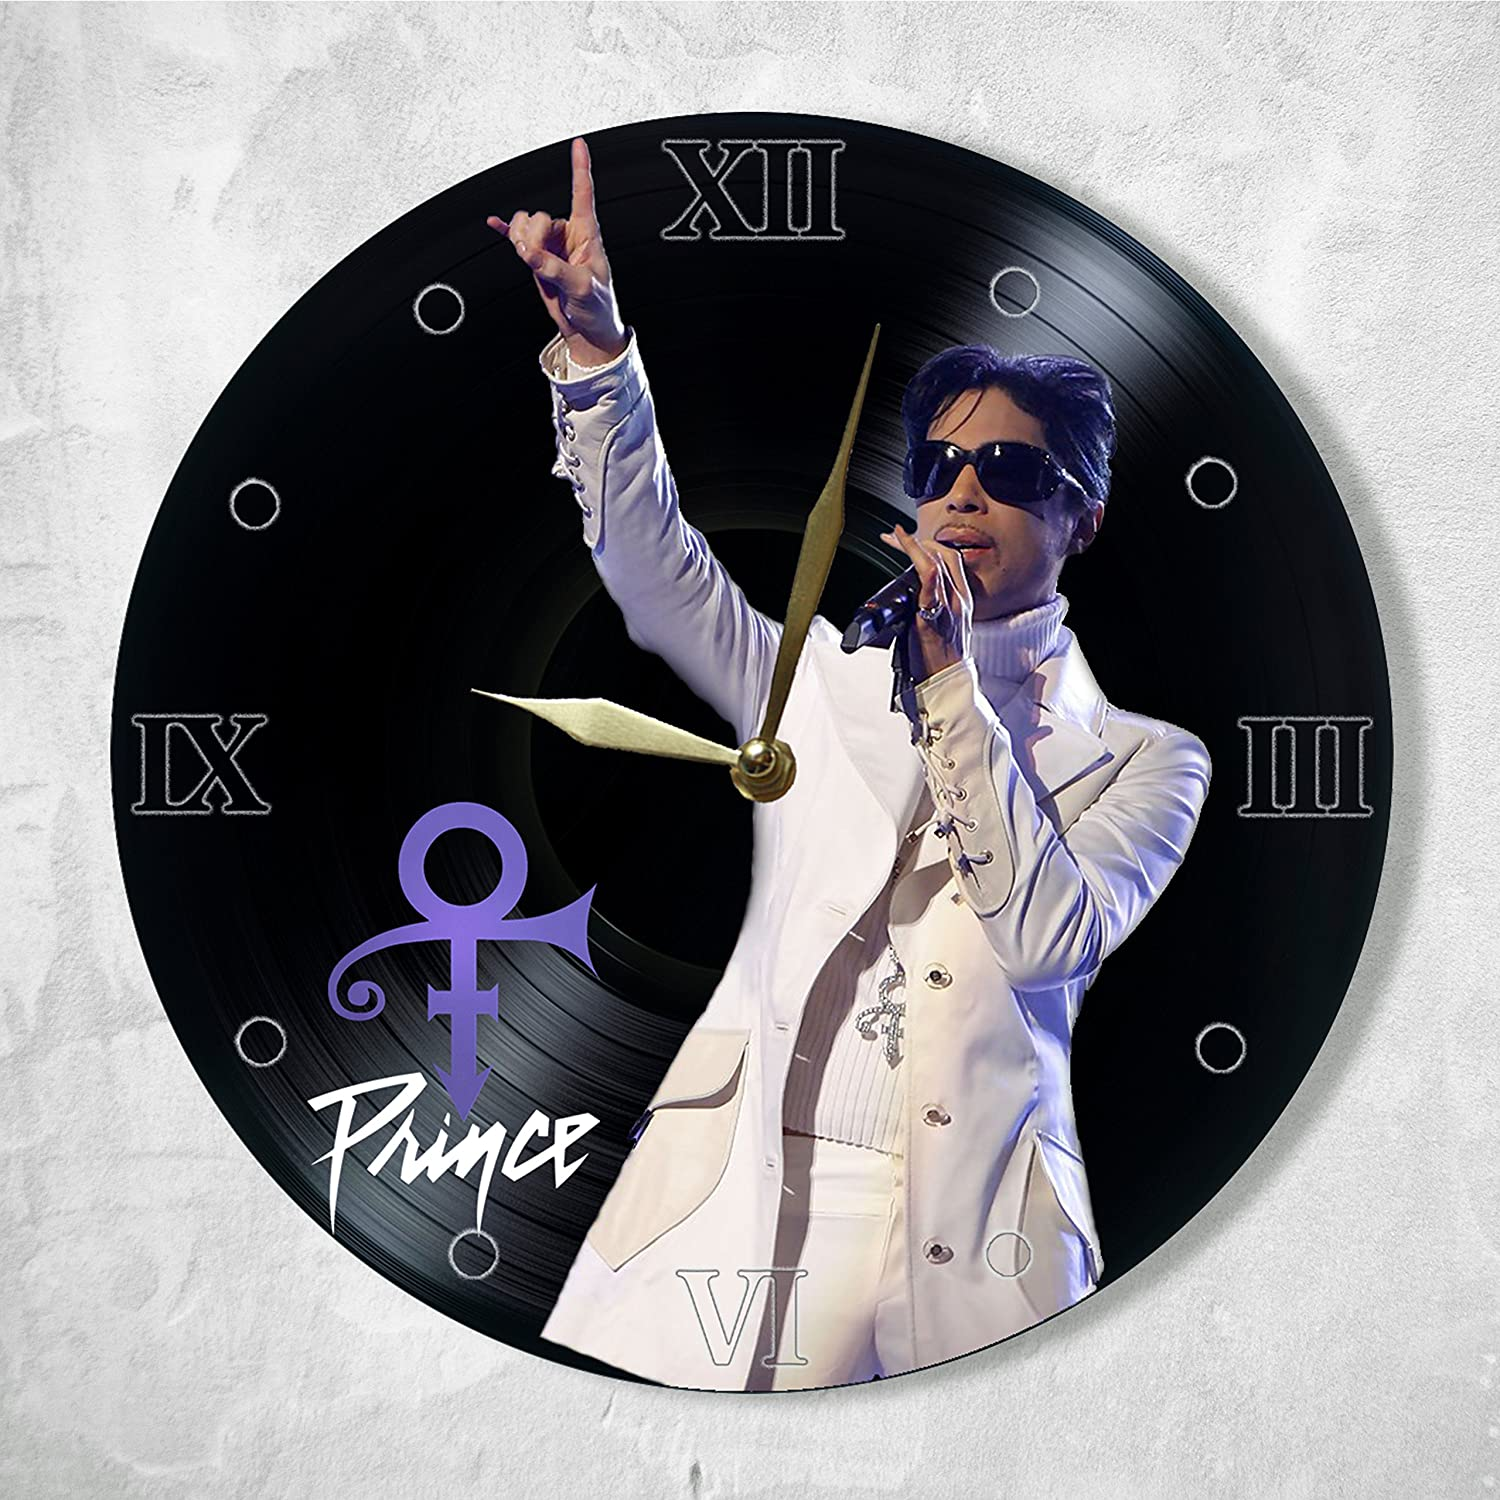 Prince Vinyl Clock Painted - Prince Wall Clock Vinyl - Best Gift for Music Lover - Original Wall Home Decor